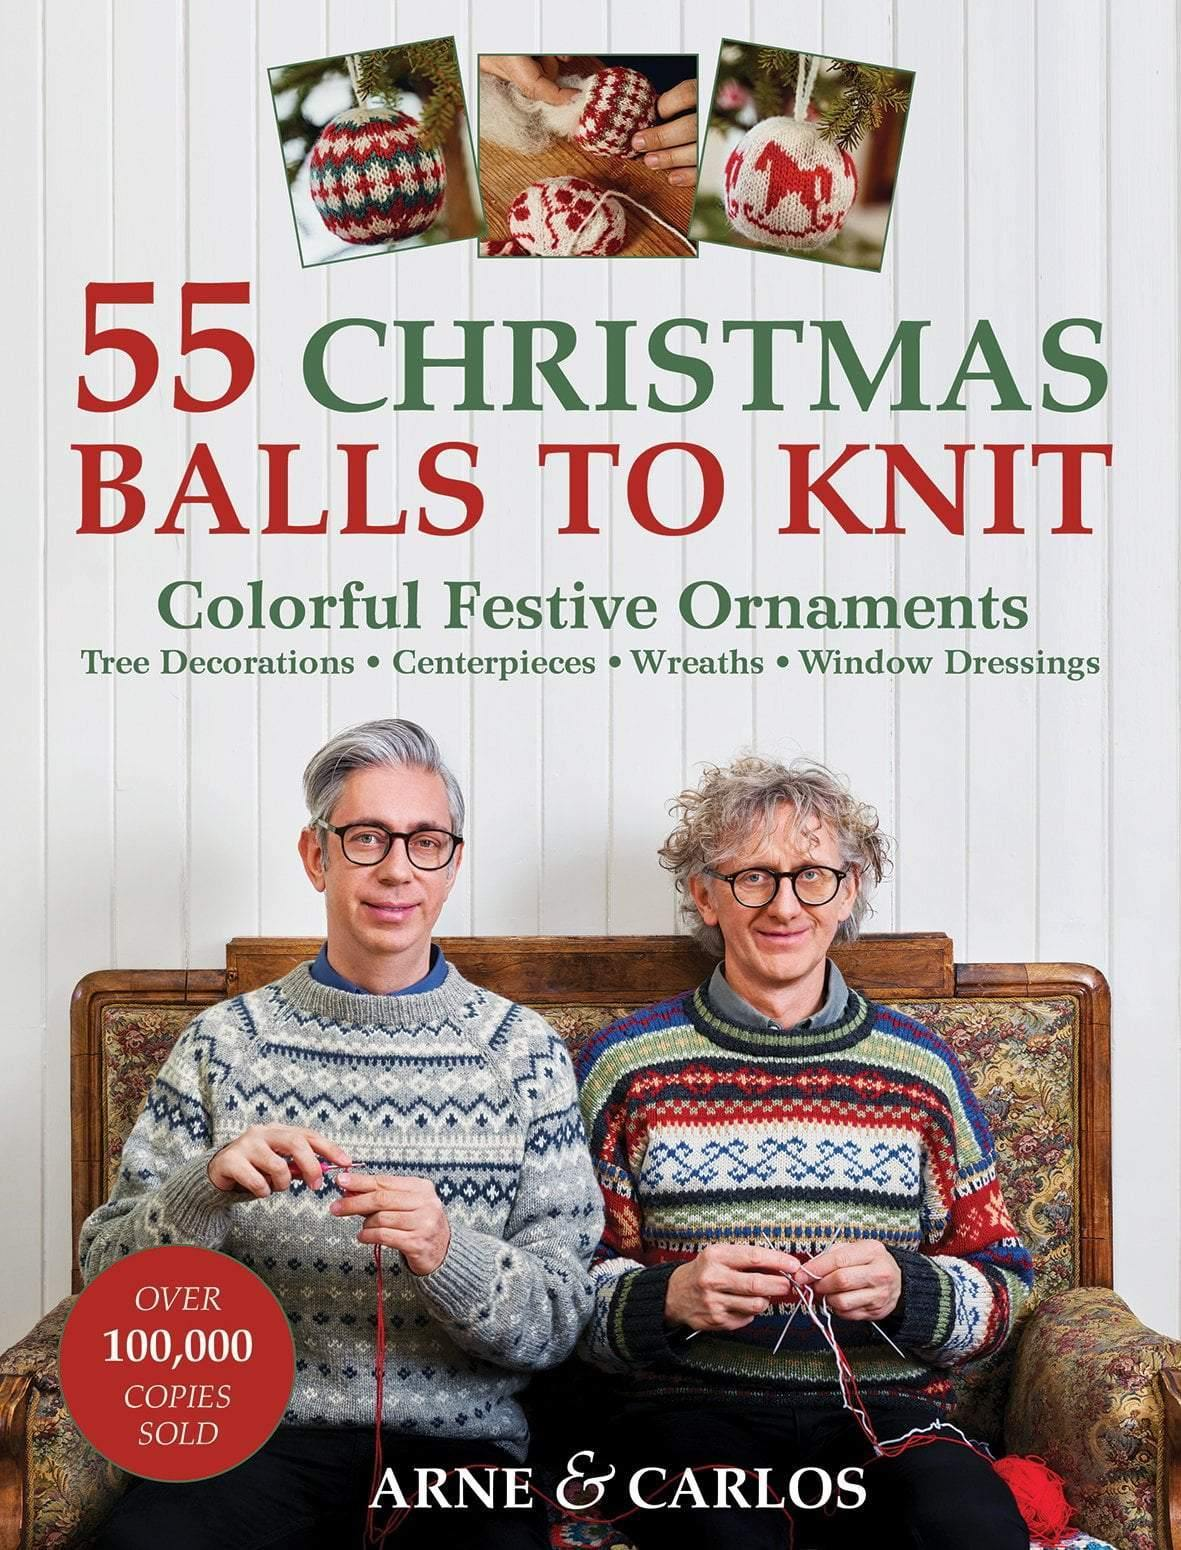 55 Christmas Balls to Knit by Arne & Carlos Search Press Book